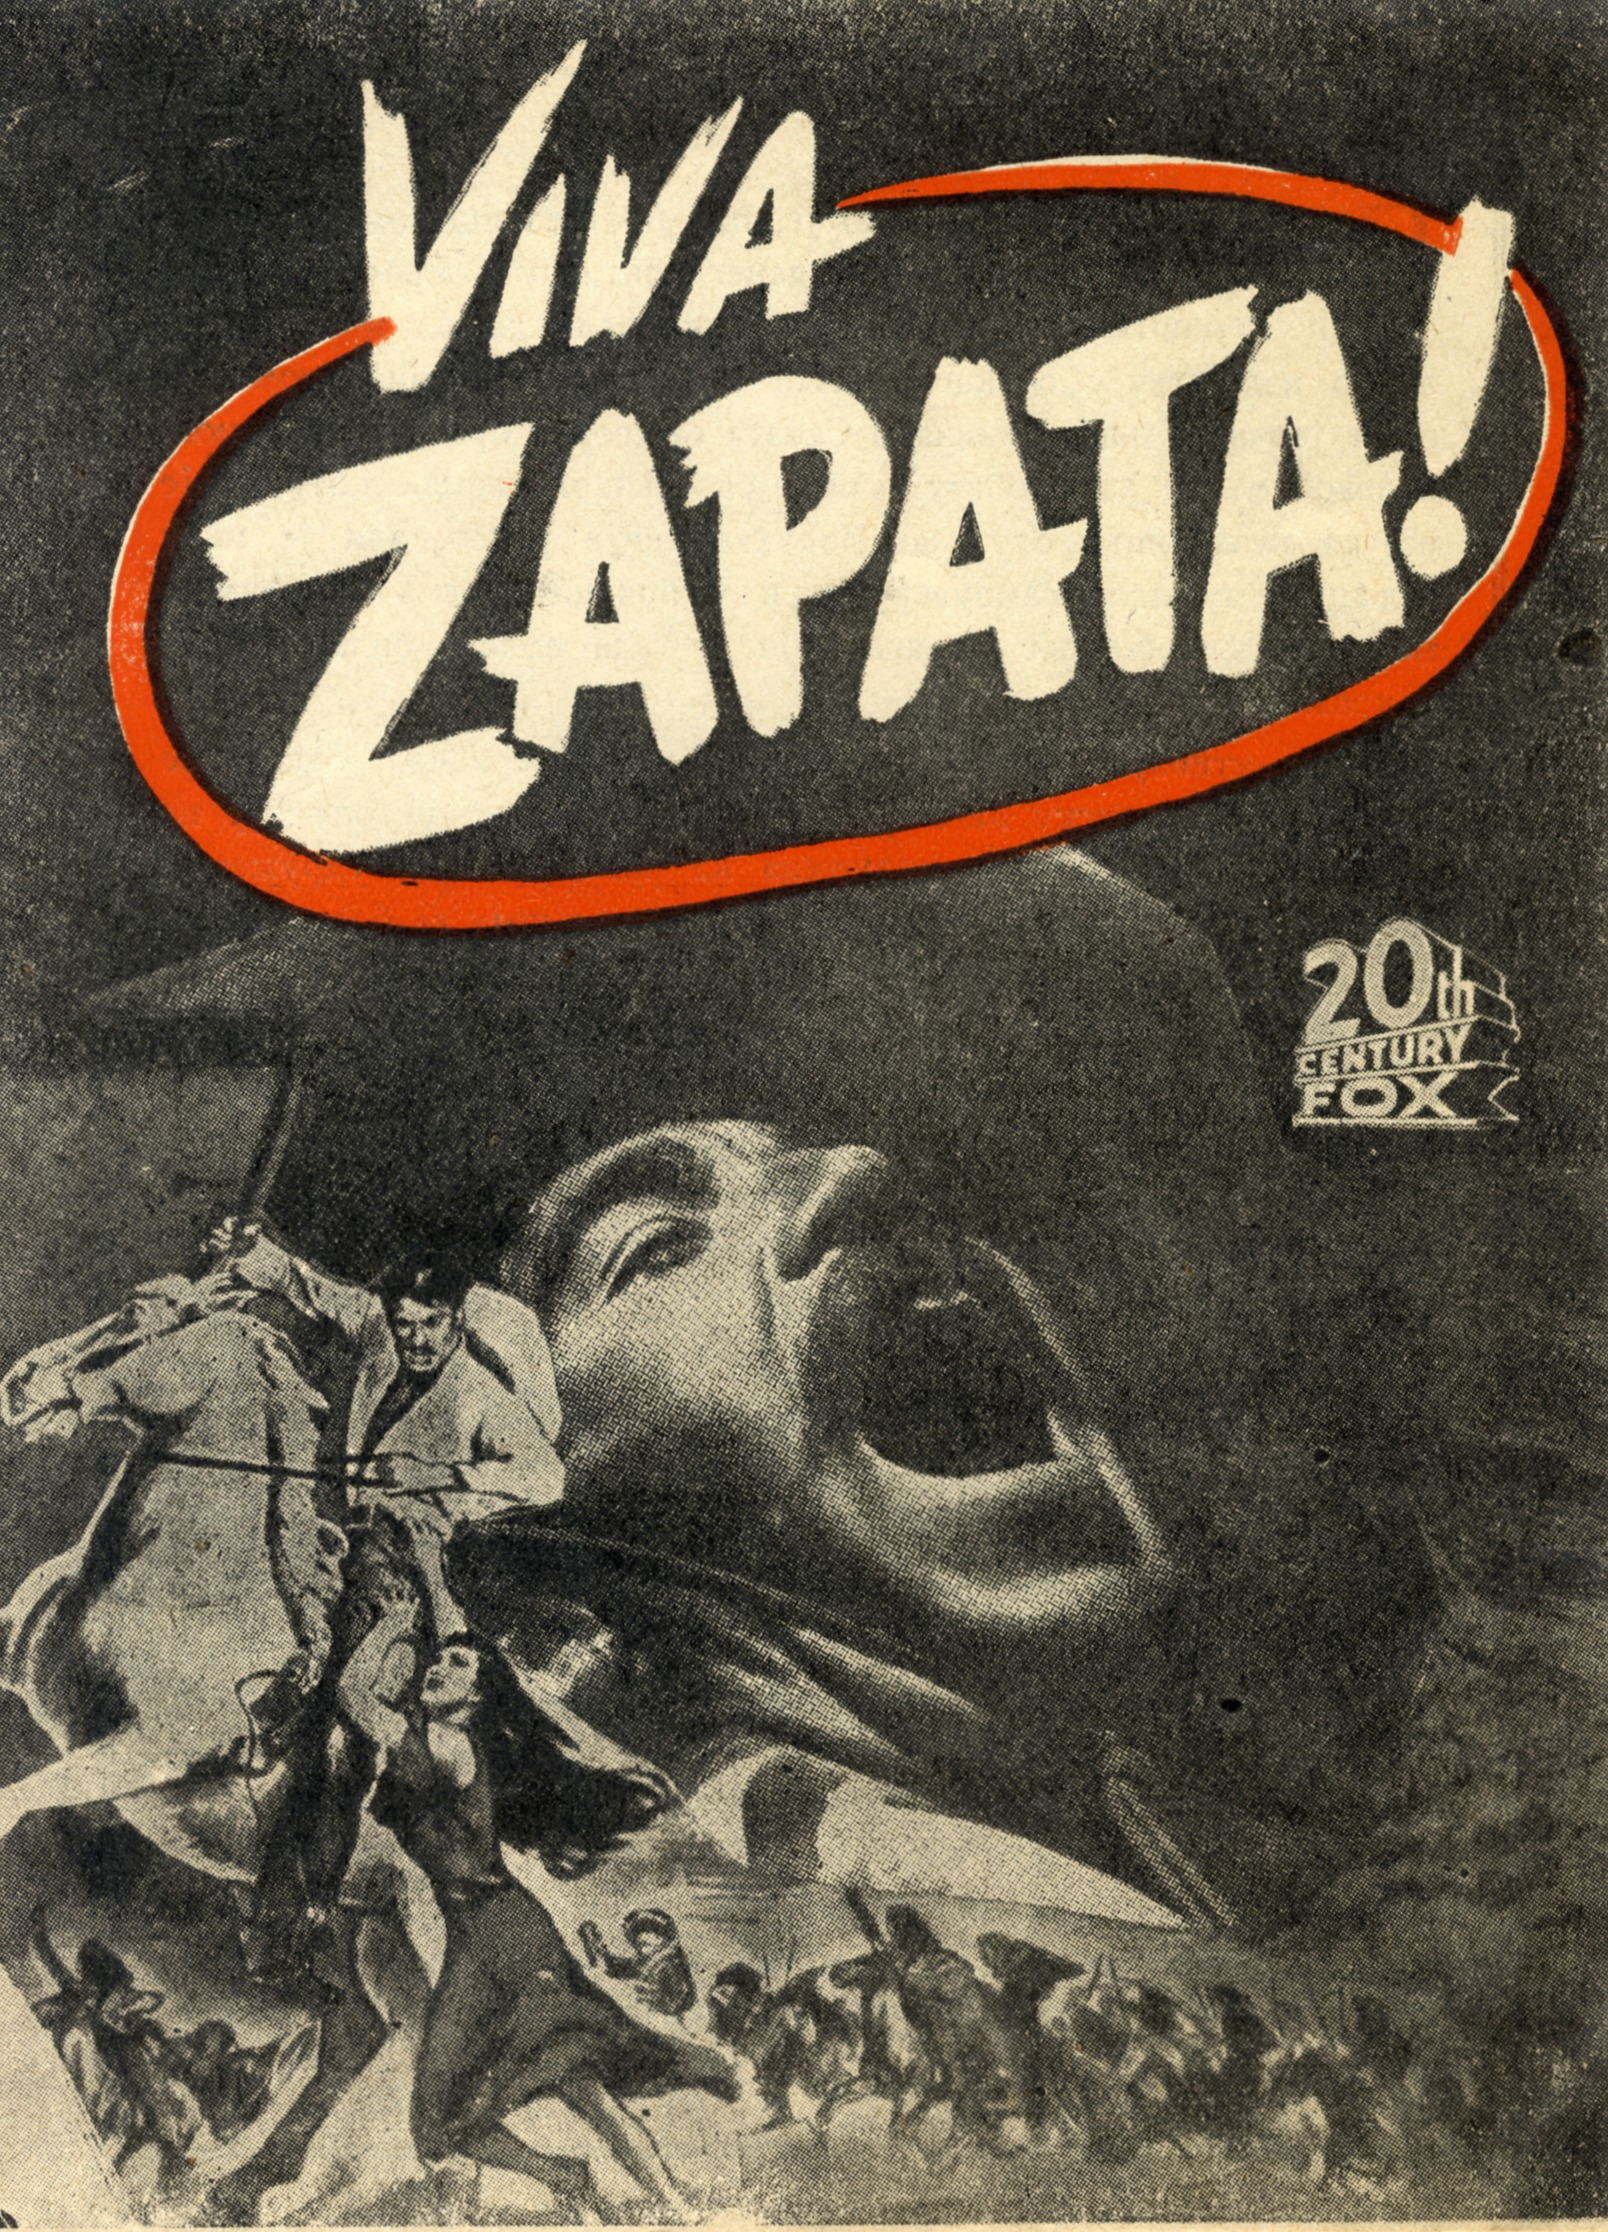 Advertisement for the feature film 'Viva Zapata', © Jugoslovenska kinoteka, Belgrade